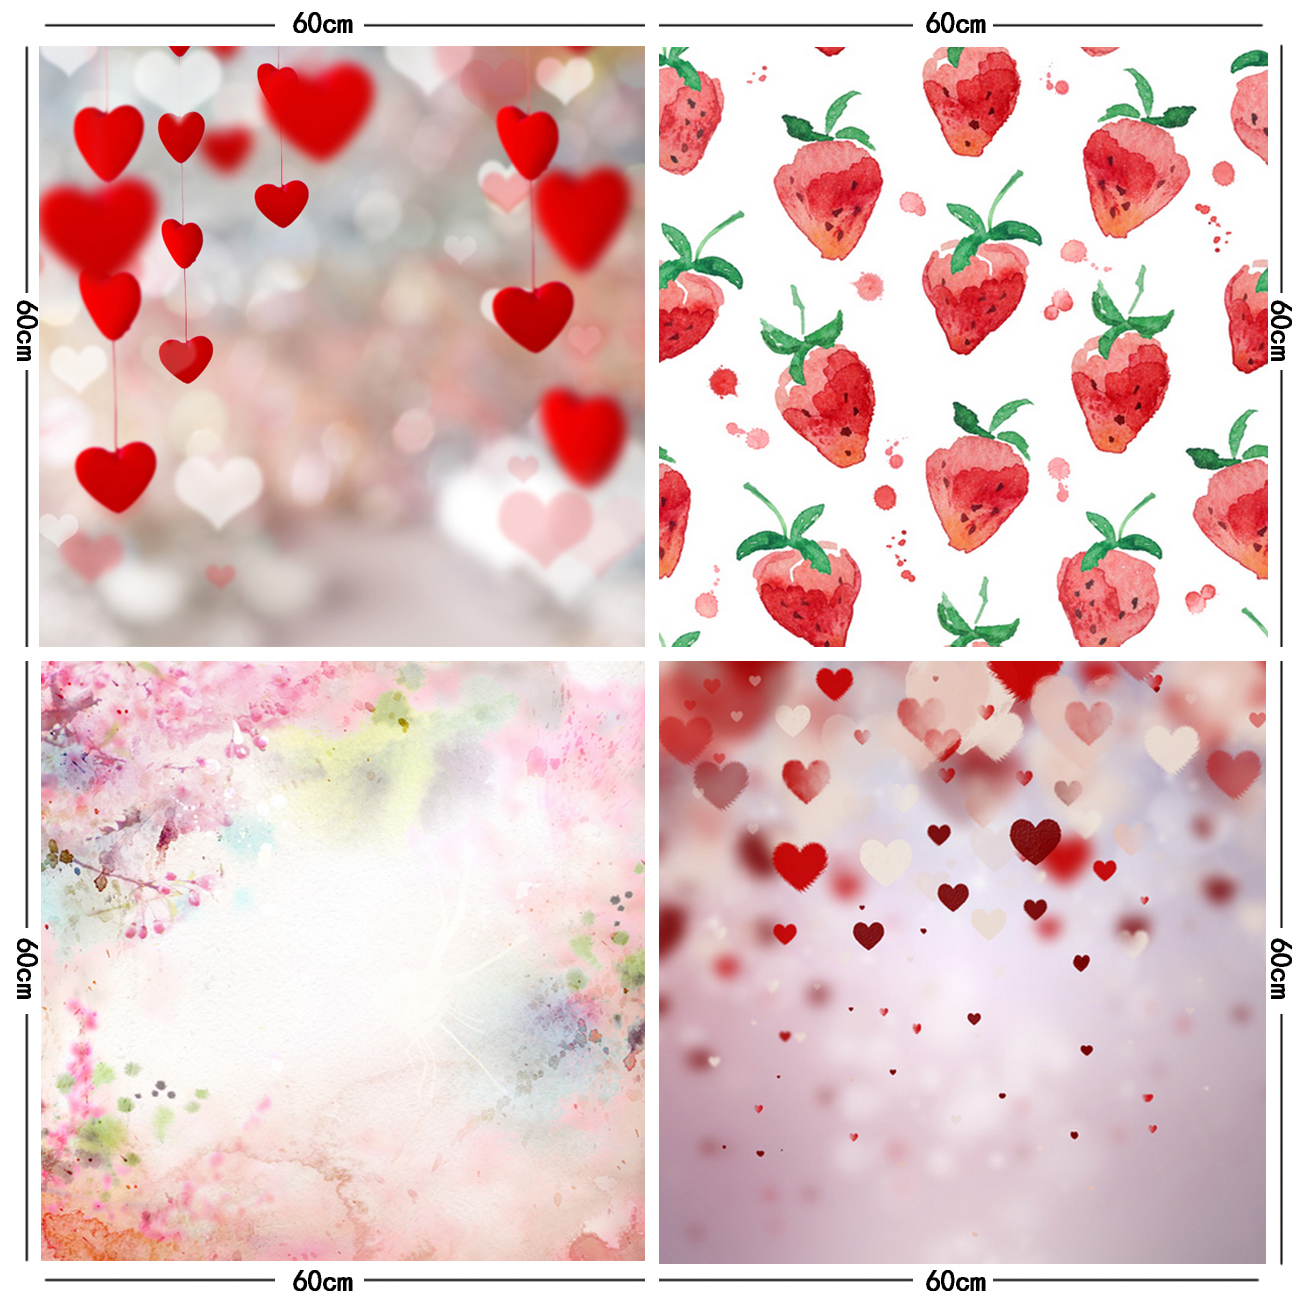 Strawberry background photography backdrops valentines backdrop photo studio props newborn props Stakes background ZH 19